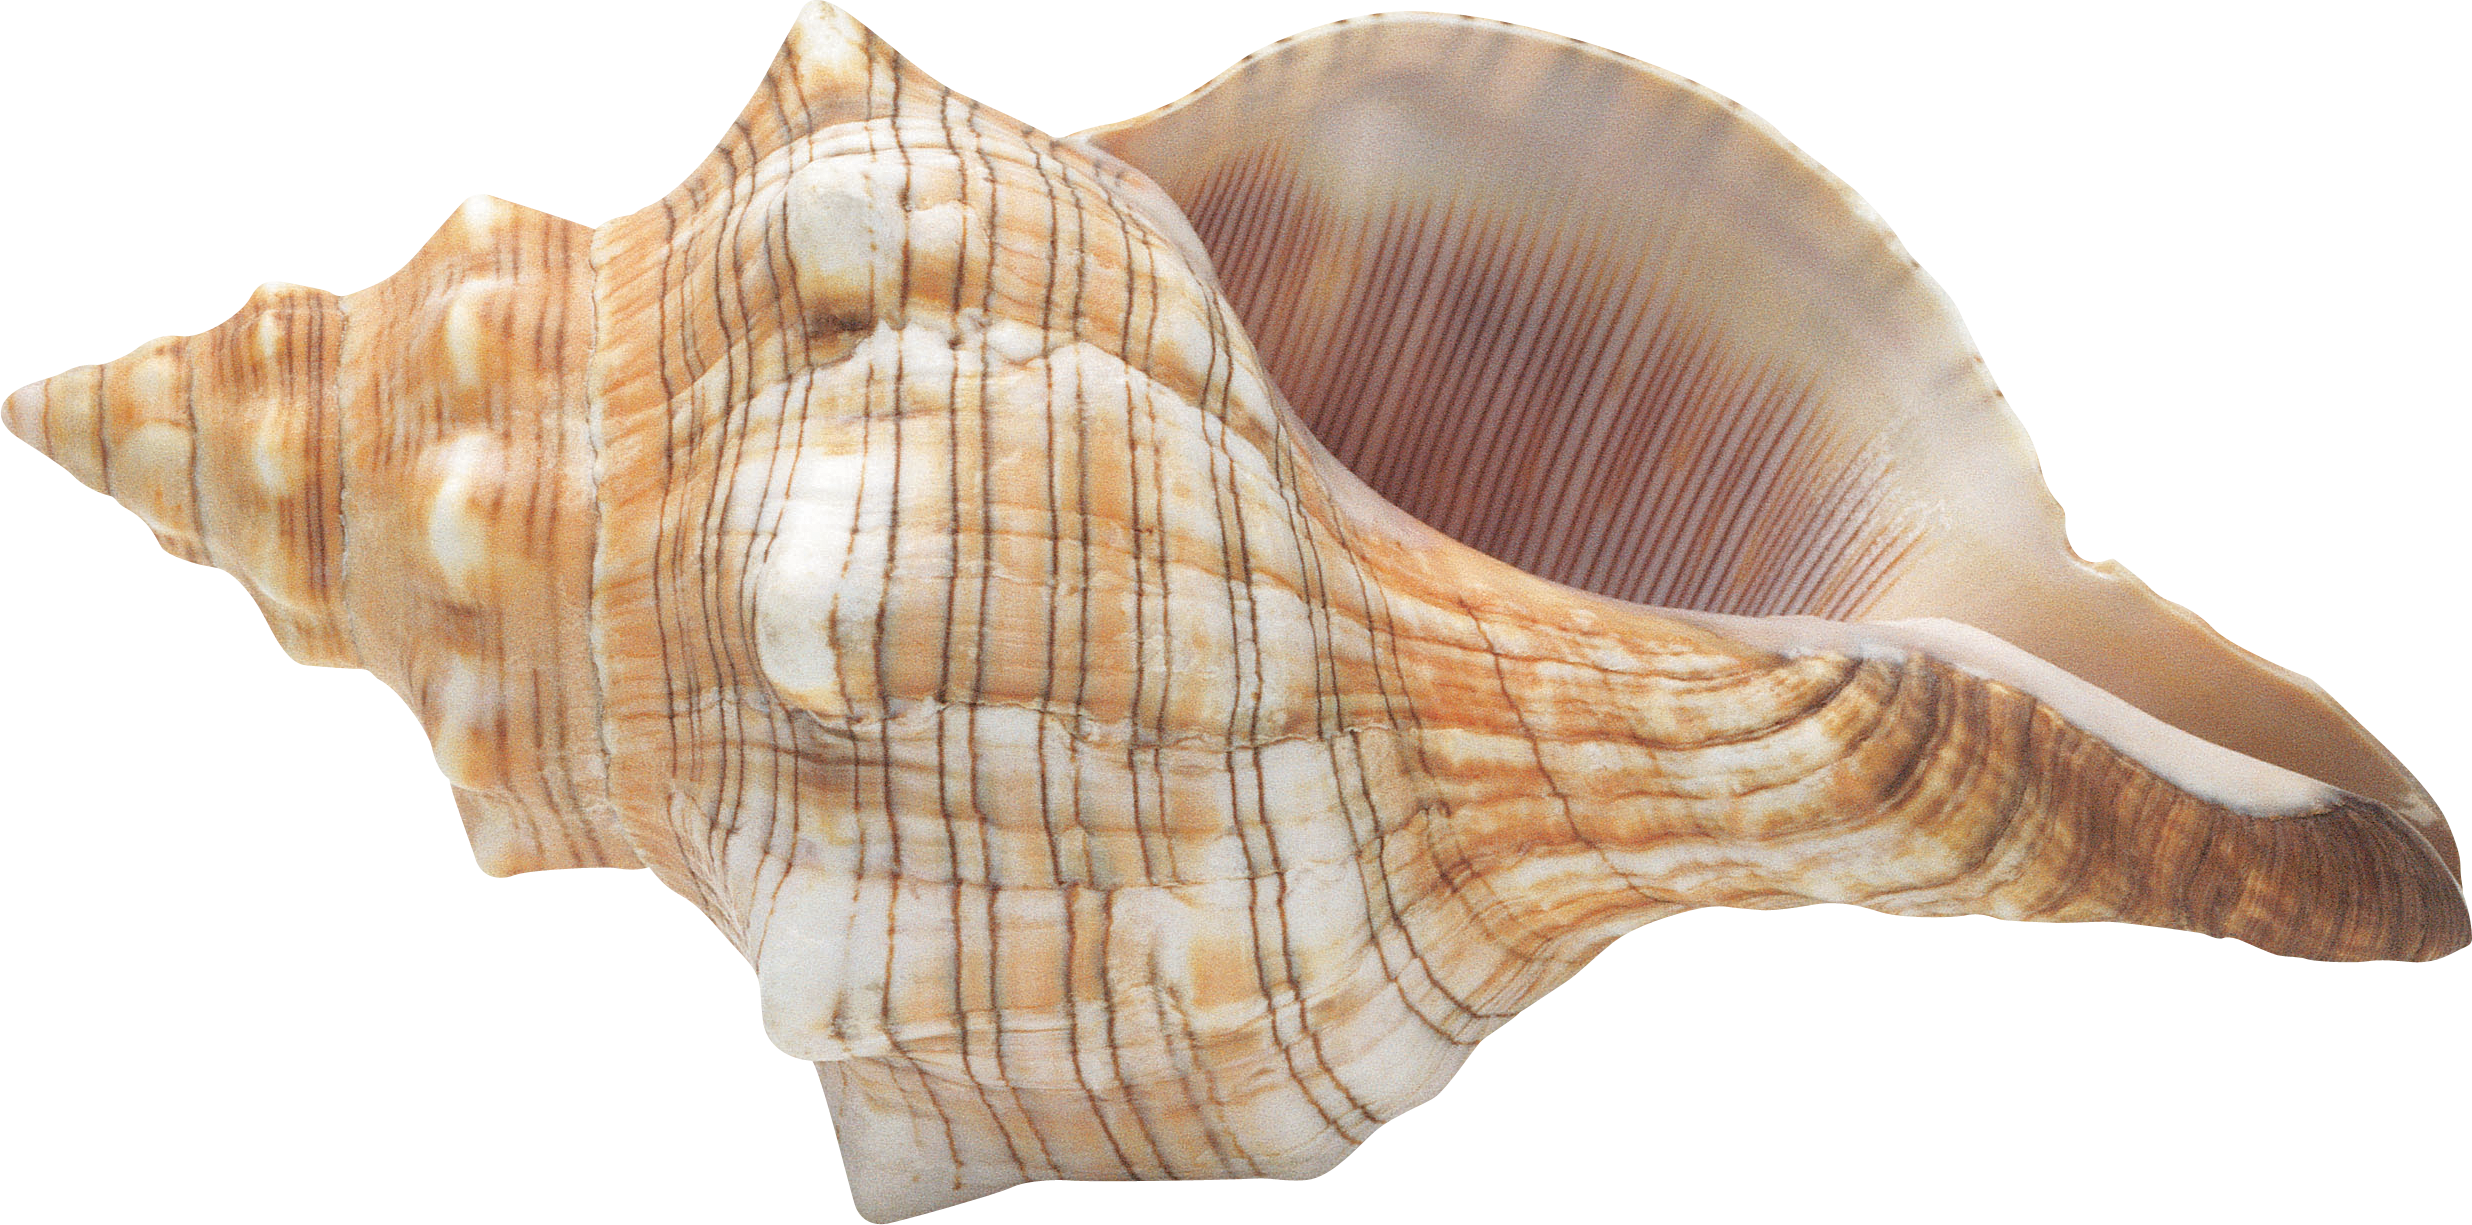 Colorful Patterned Pointed Conch Images image #48543